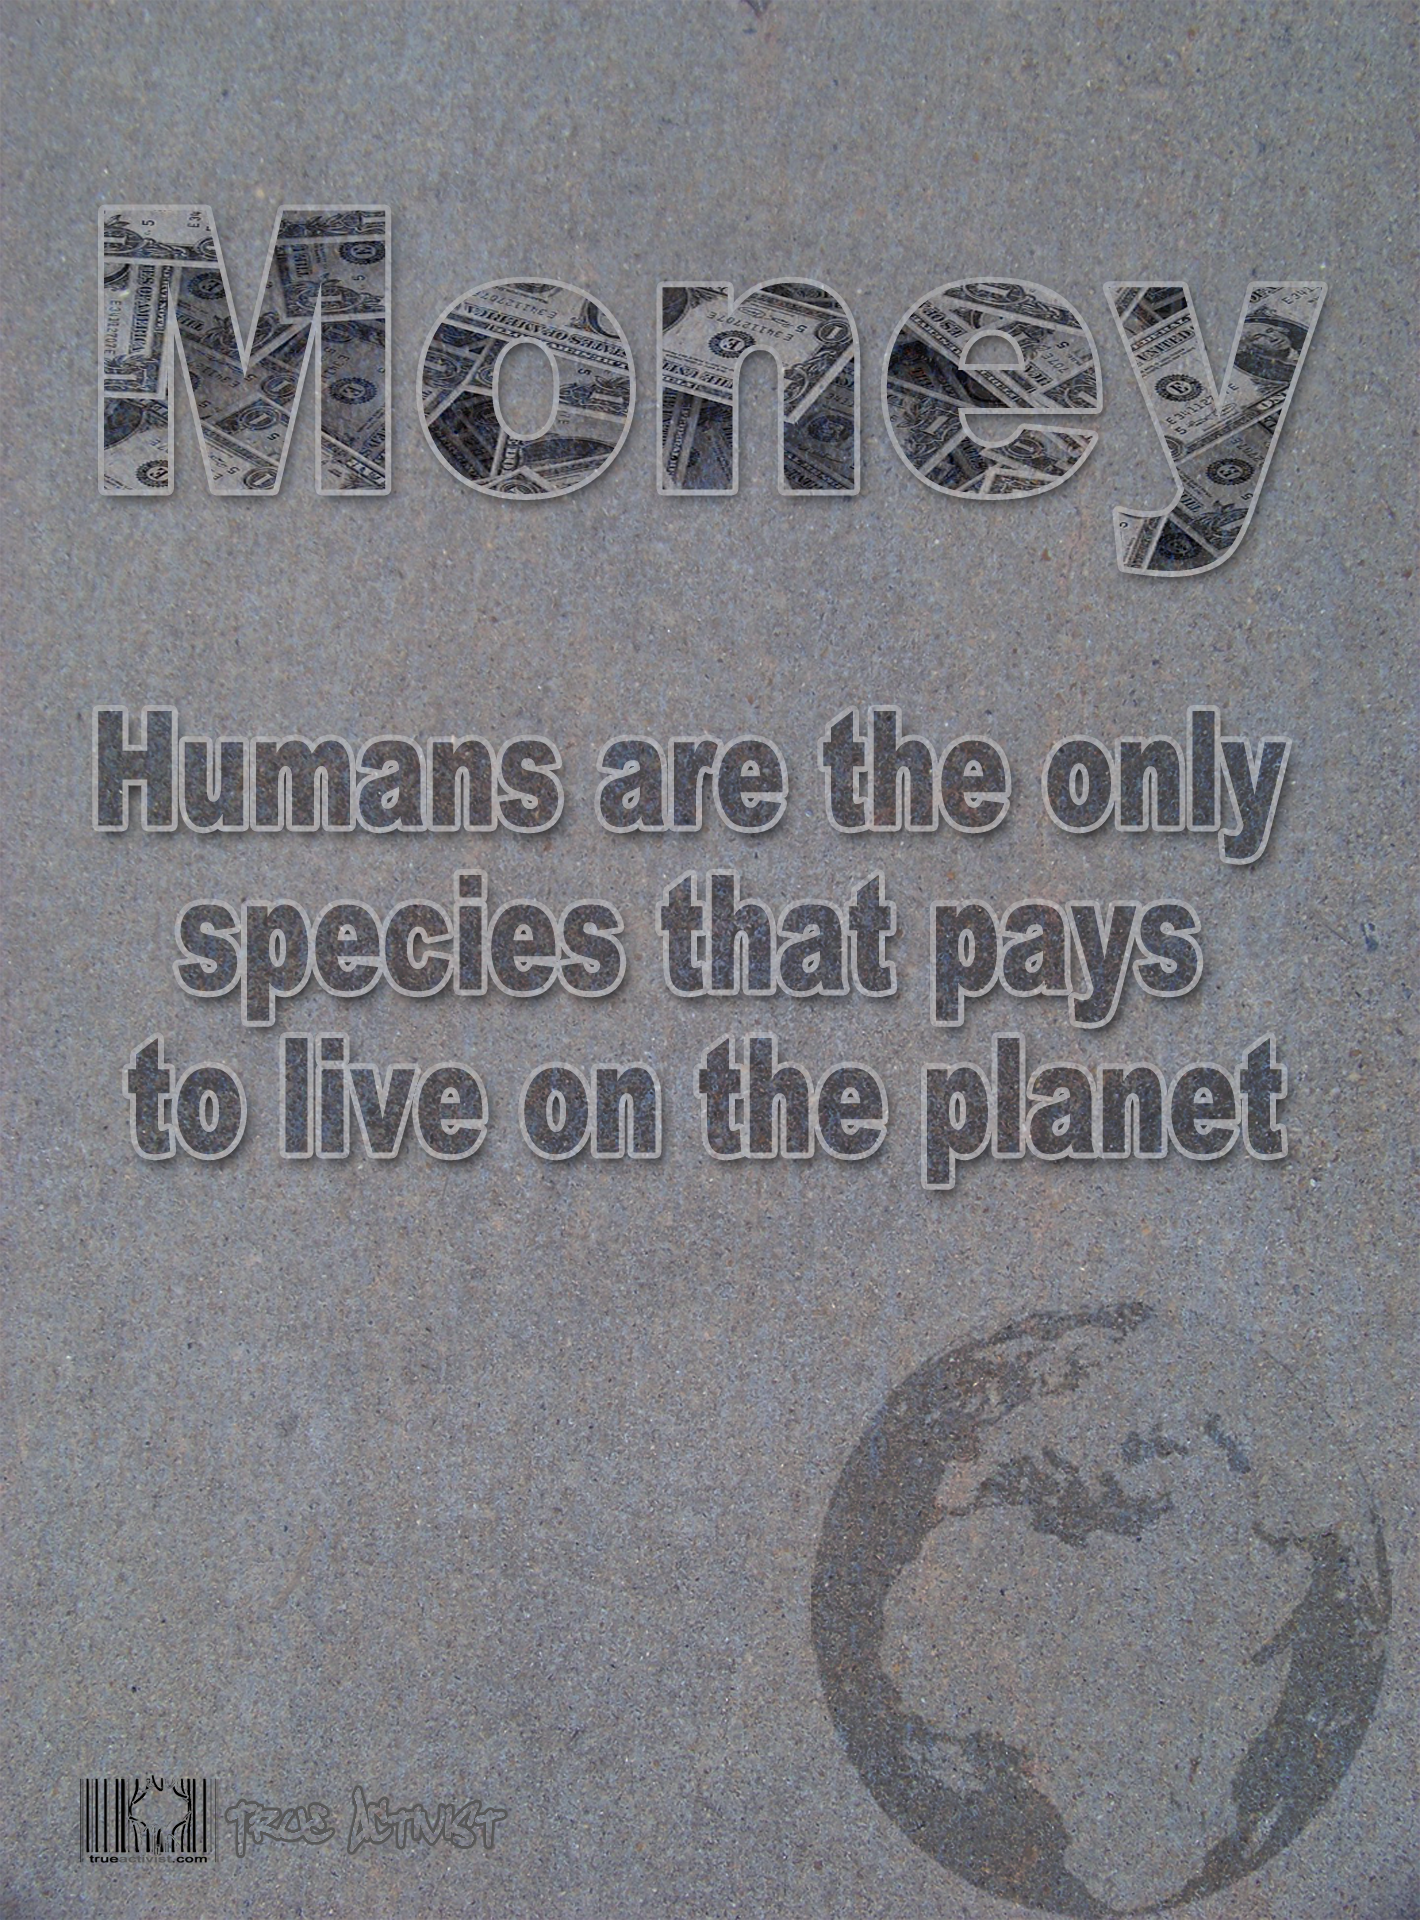 Humans are the only species that pays to live on the